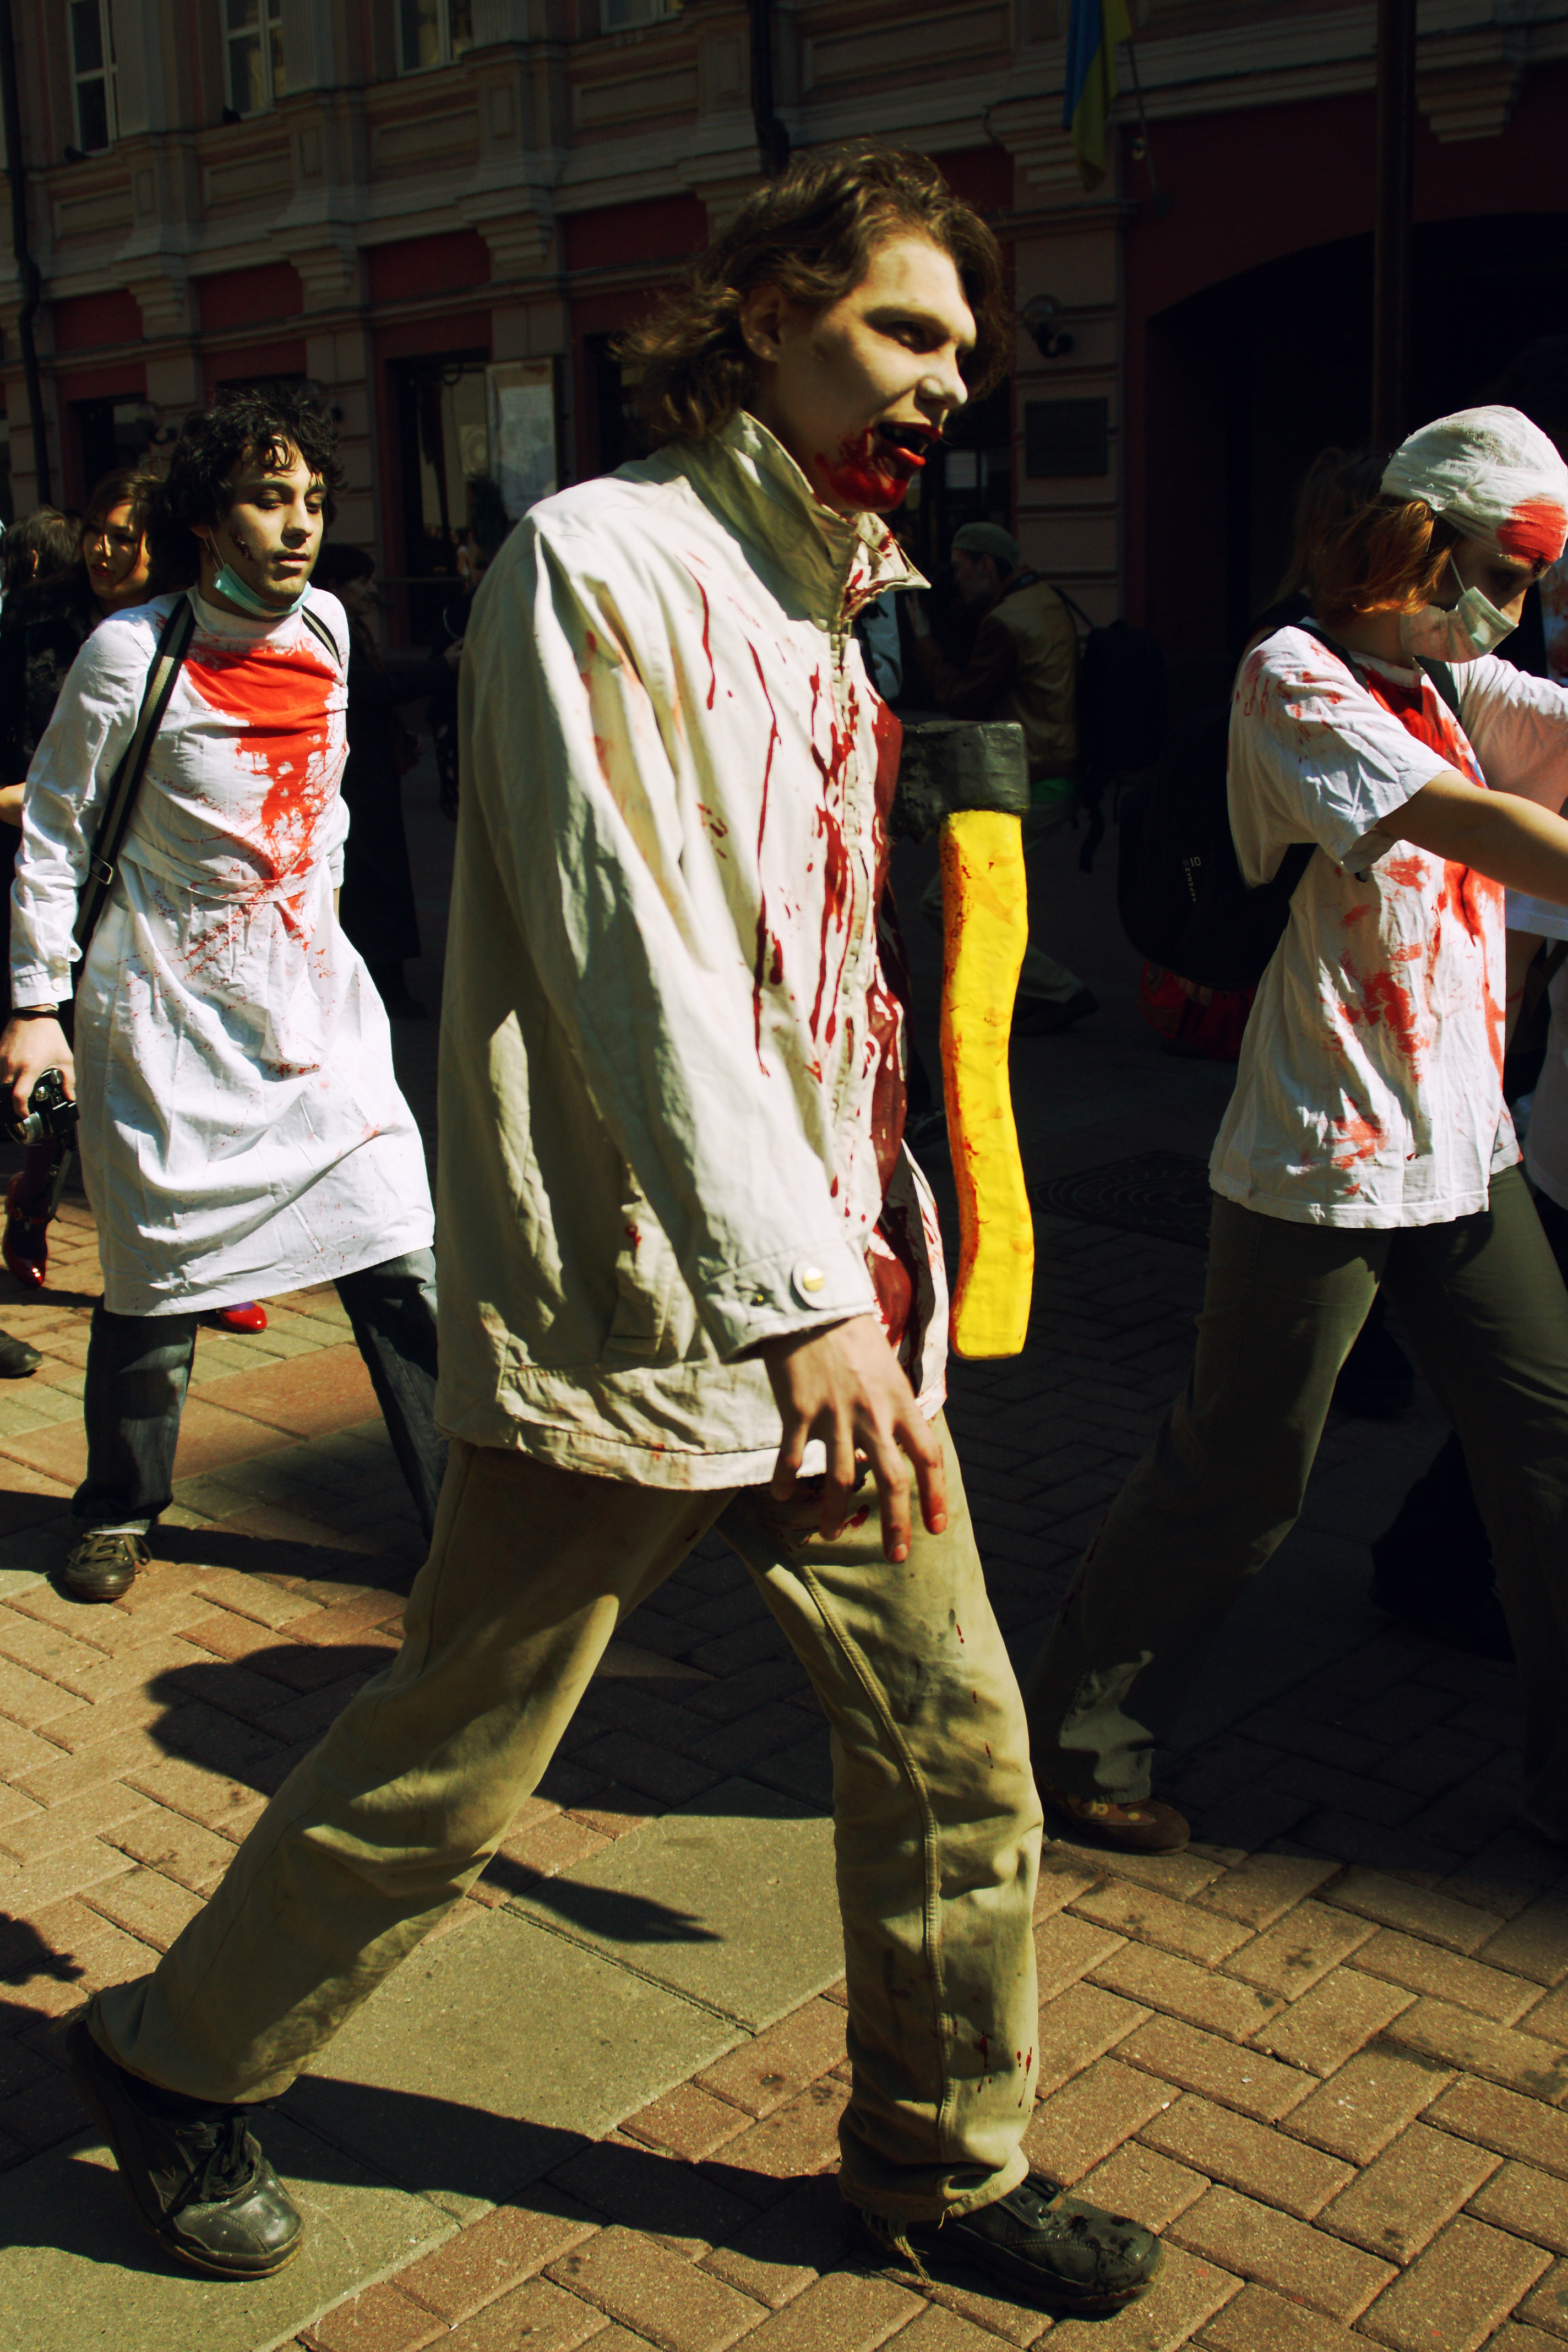 http://upload.wikimedia.org/wikipedia/commons/9/93/Zombies_in_Moscow.jpg